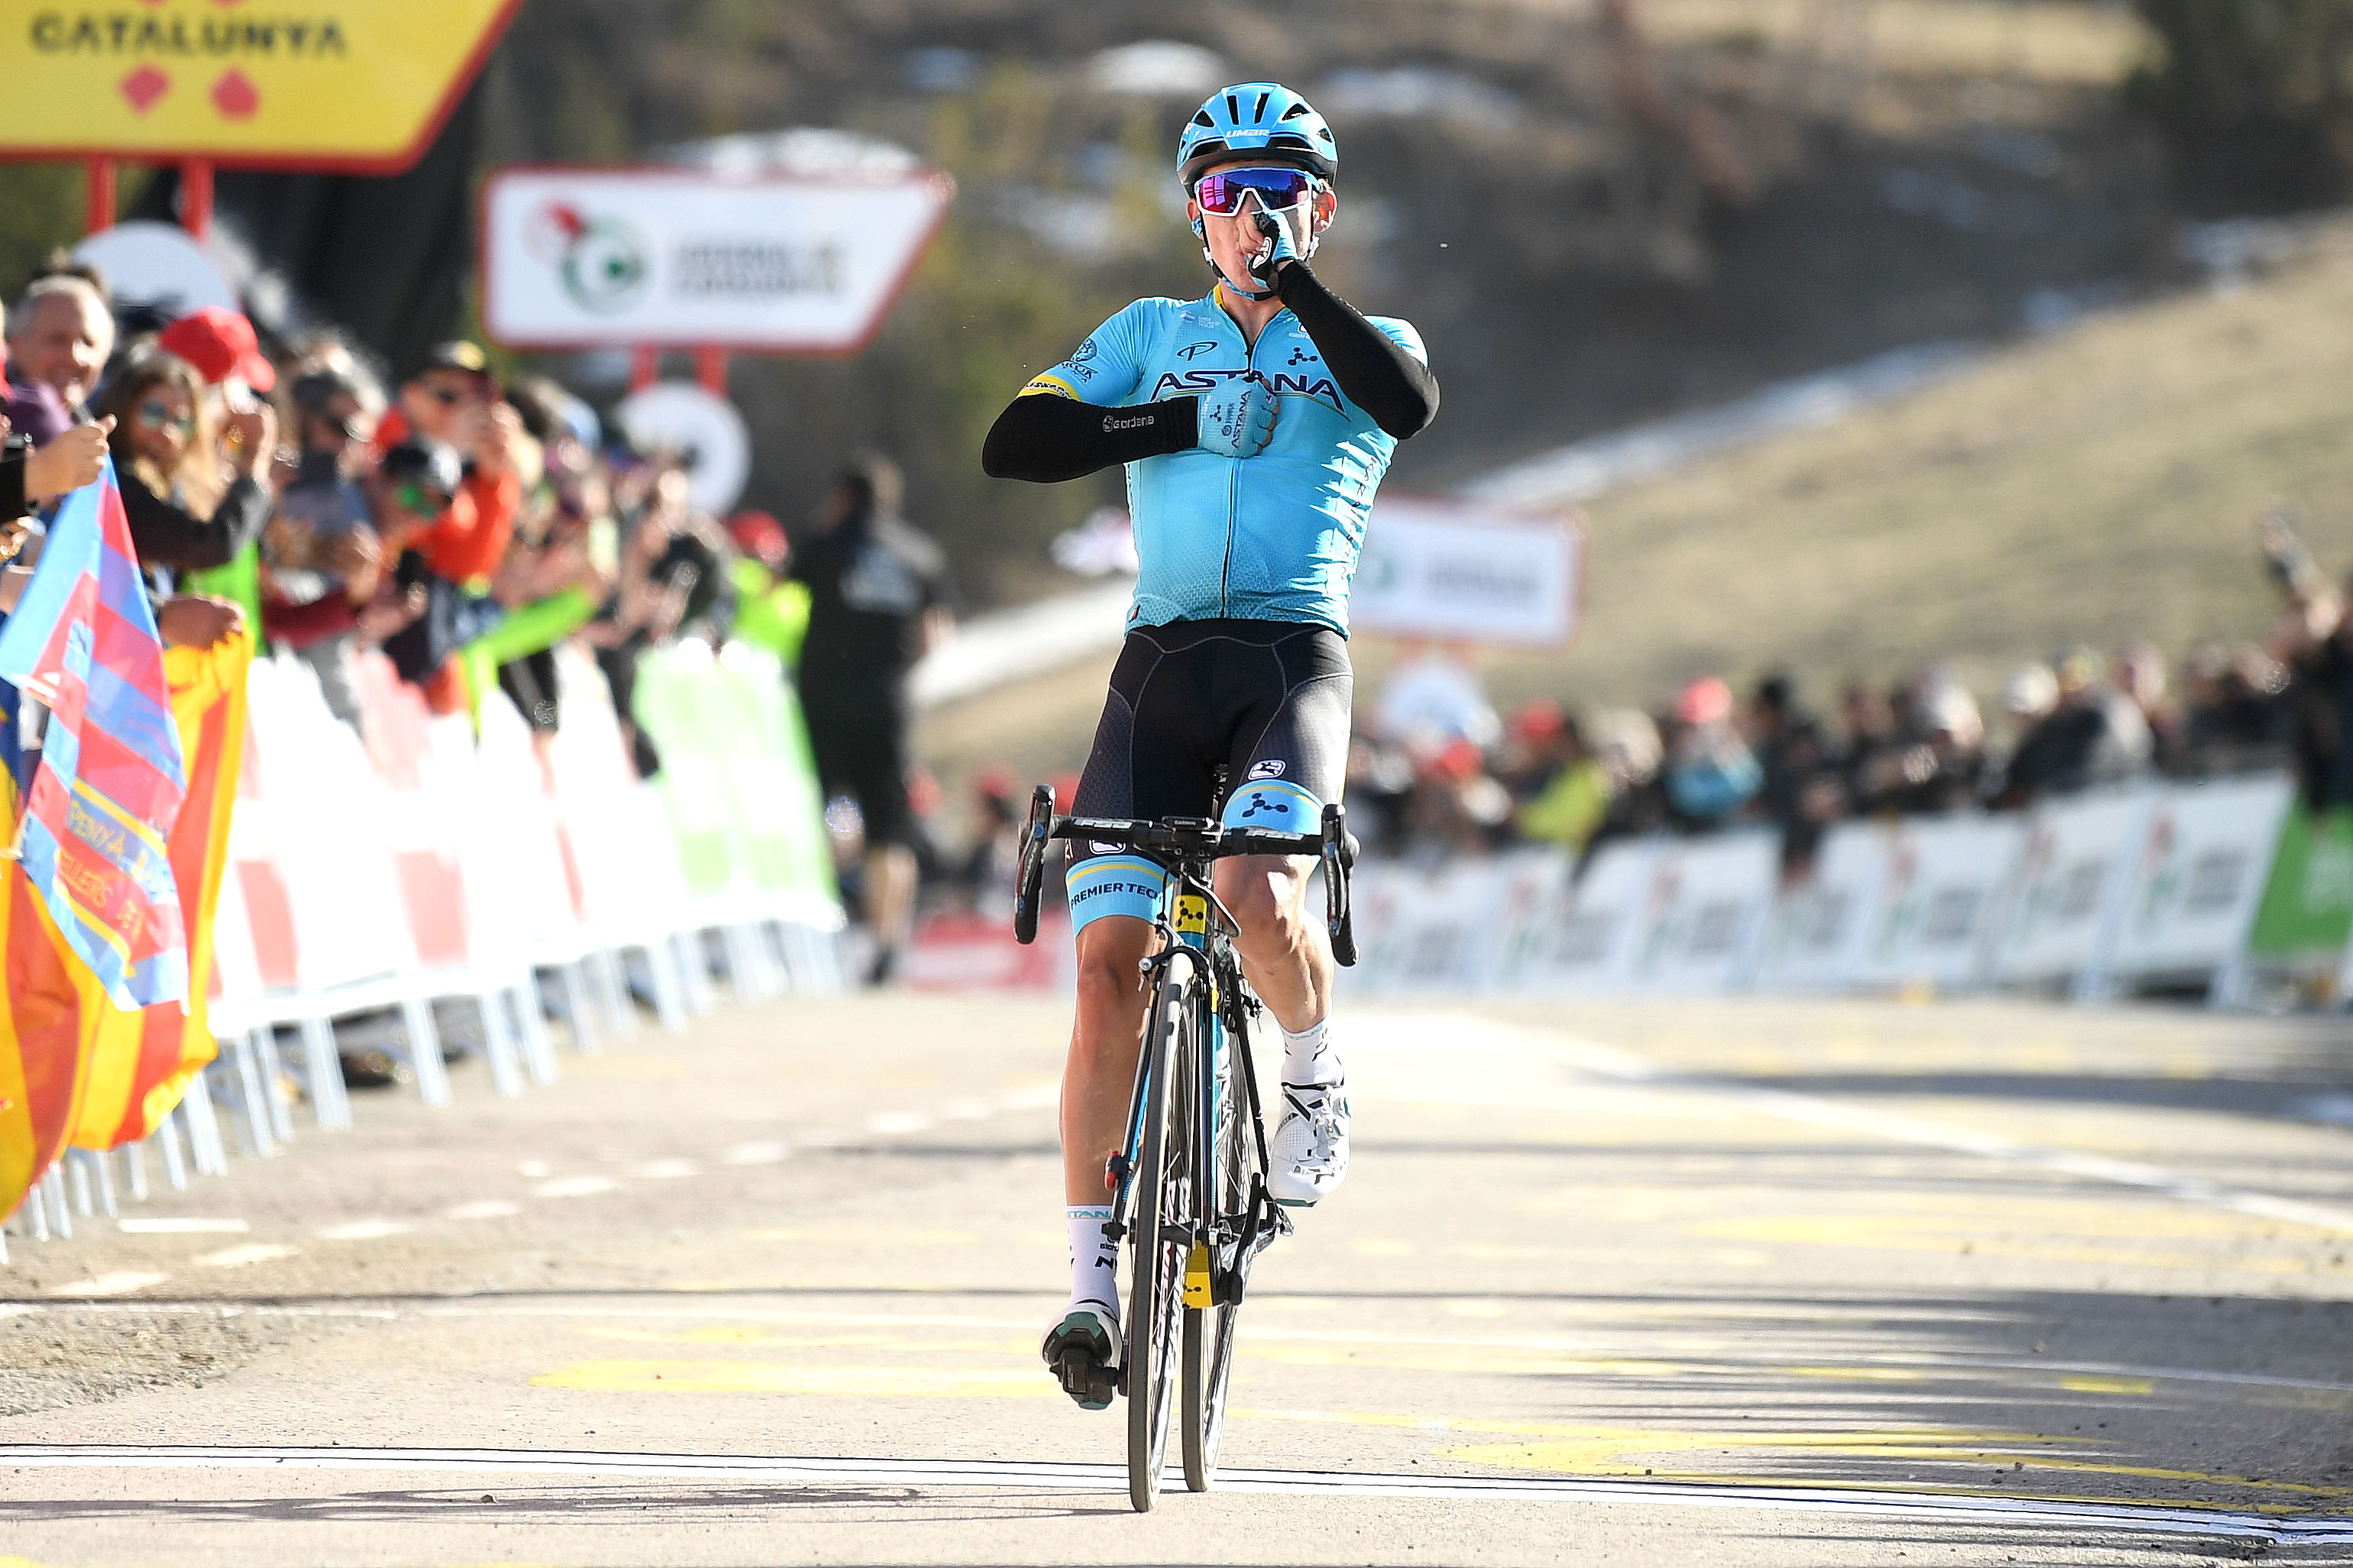 Miguel Ángel López takes overall lead with victory on stage